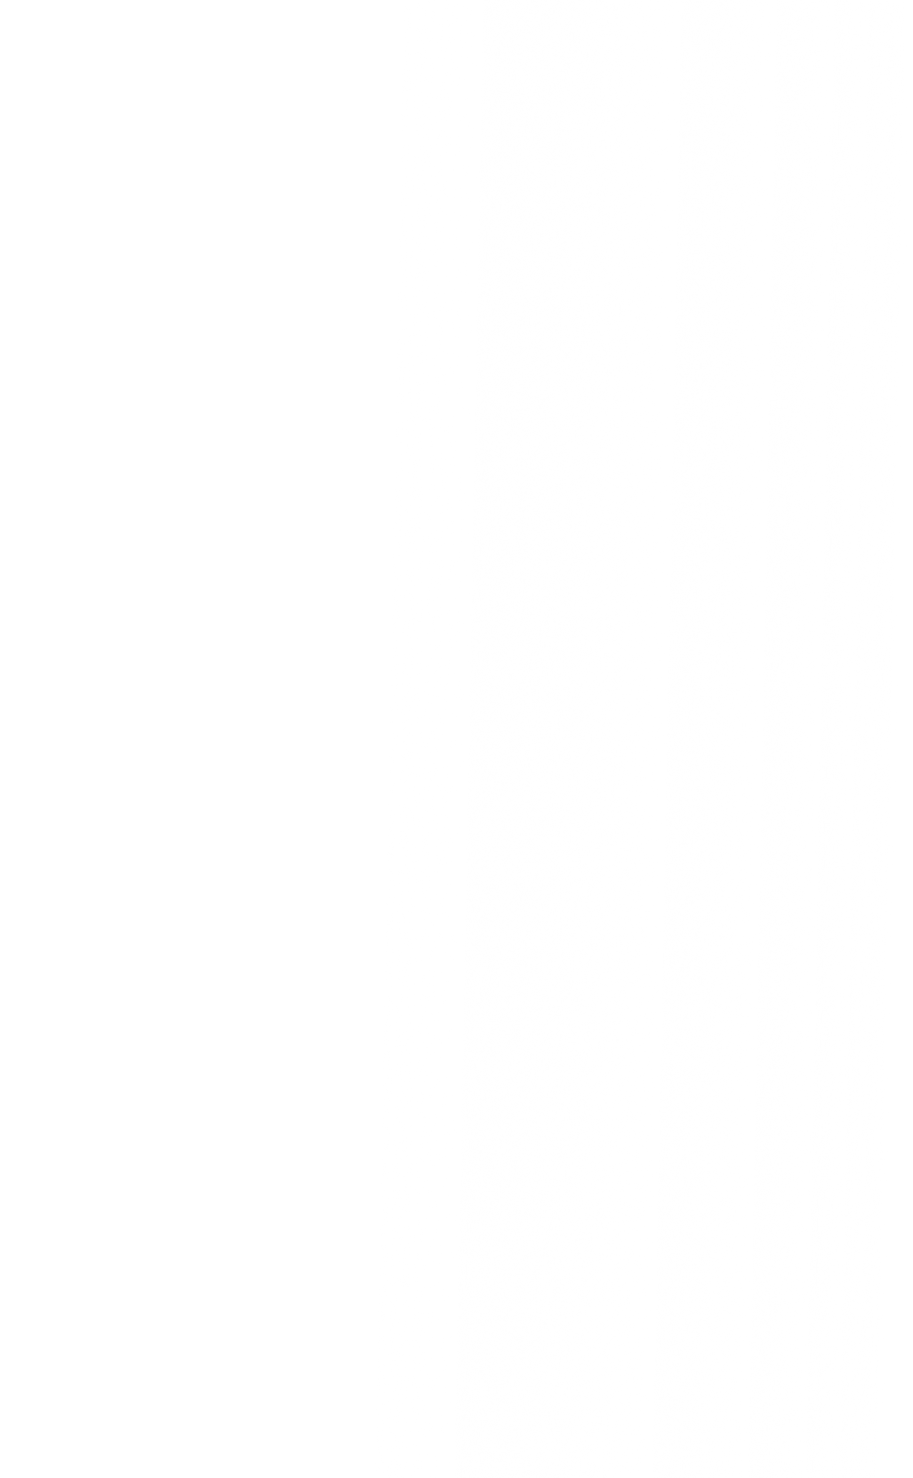 White fade 002 50%.png